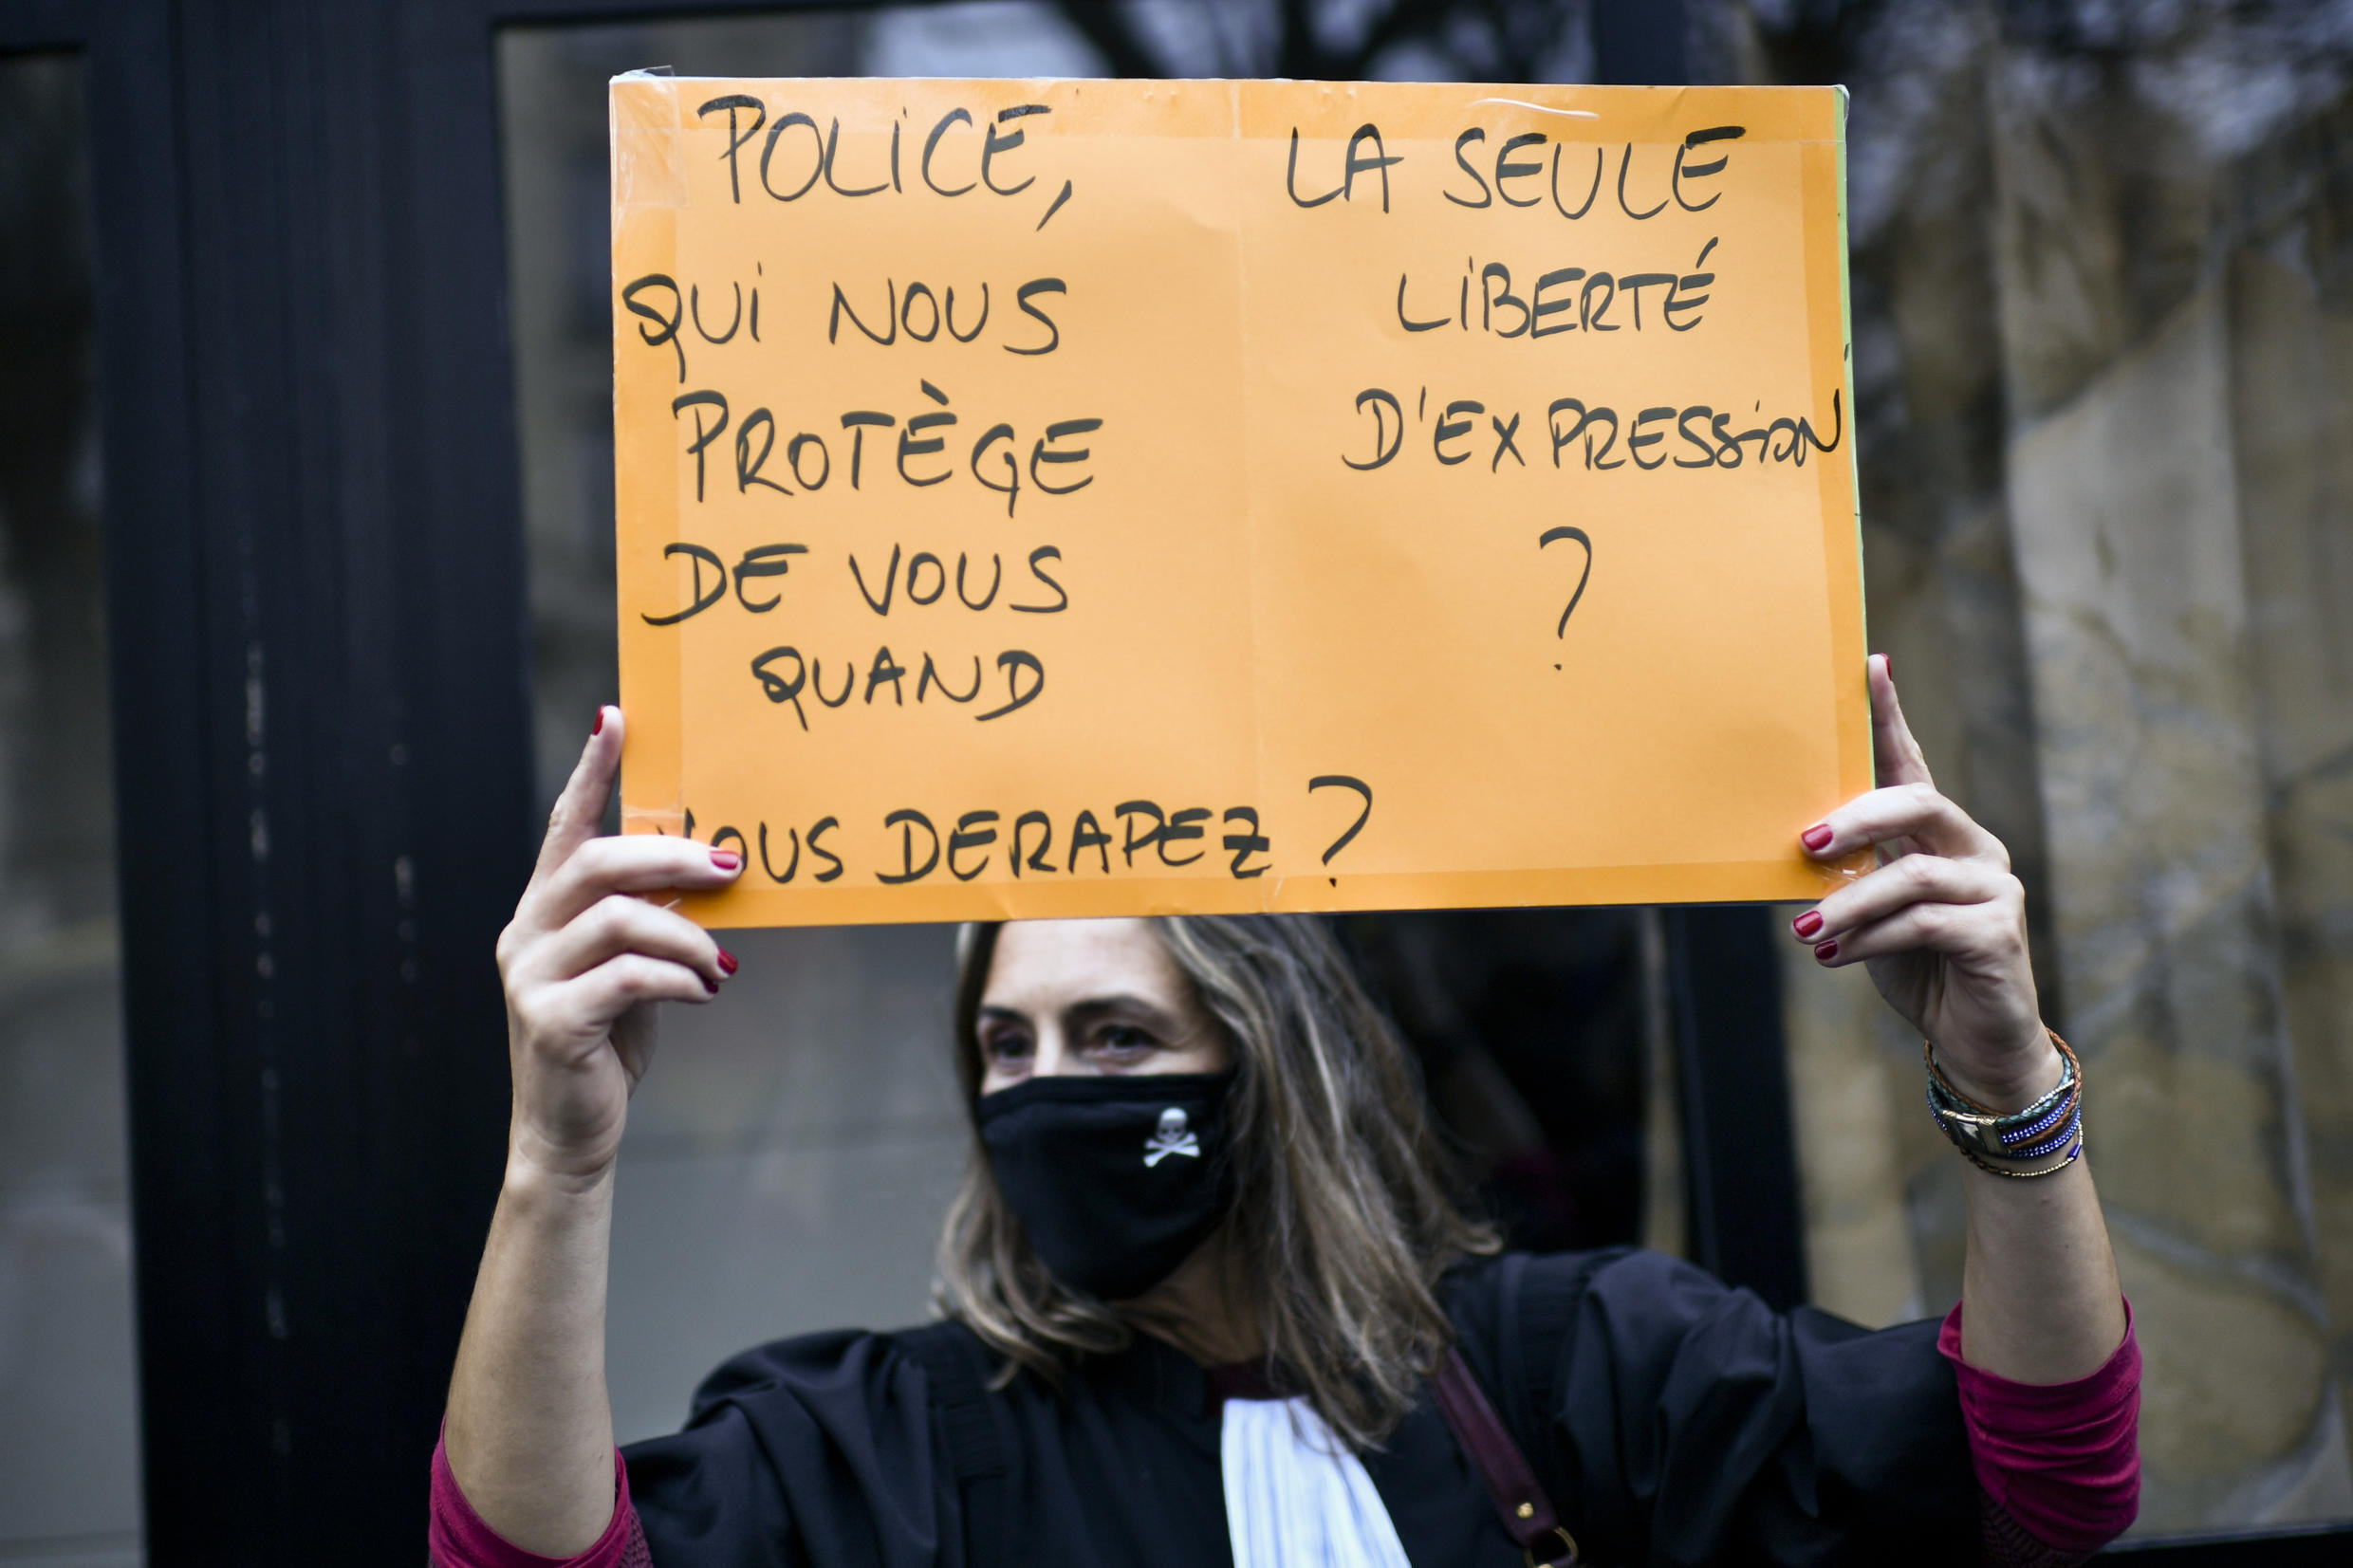 """French police have long been accused of using heavy-handed tactics. A protestor in lawyer's garb holds a sign reading """"Police, who will protect us when you misbehave ?"""" during a rally against the comprehensive security bill debated in parliament."""